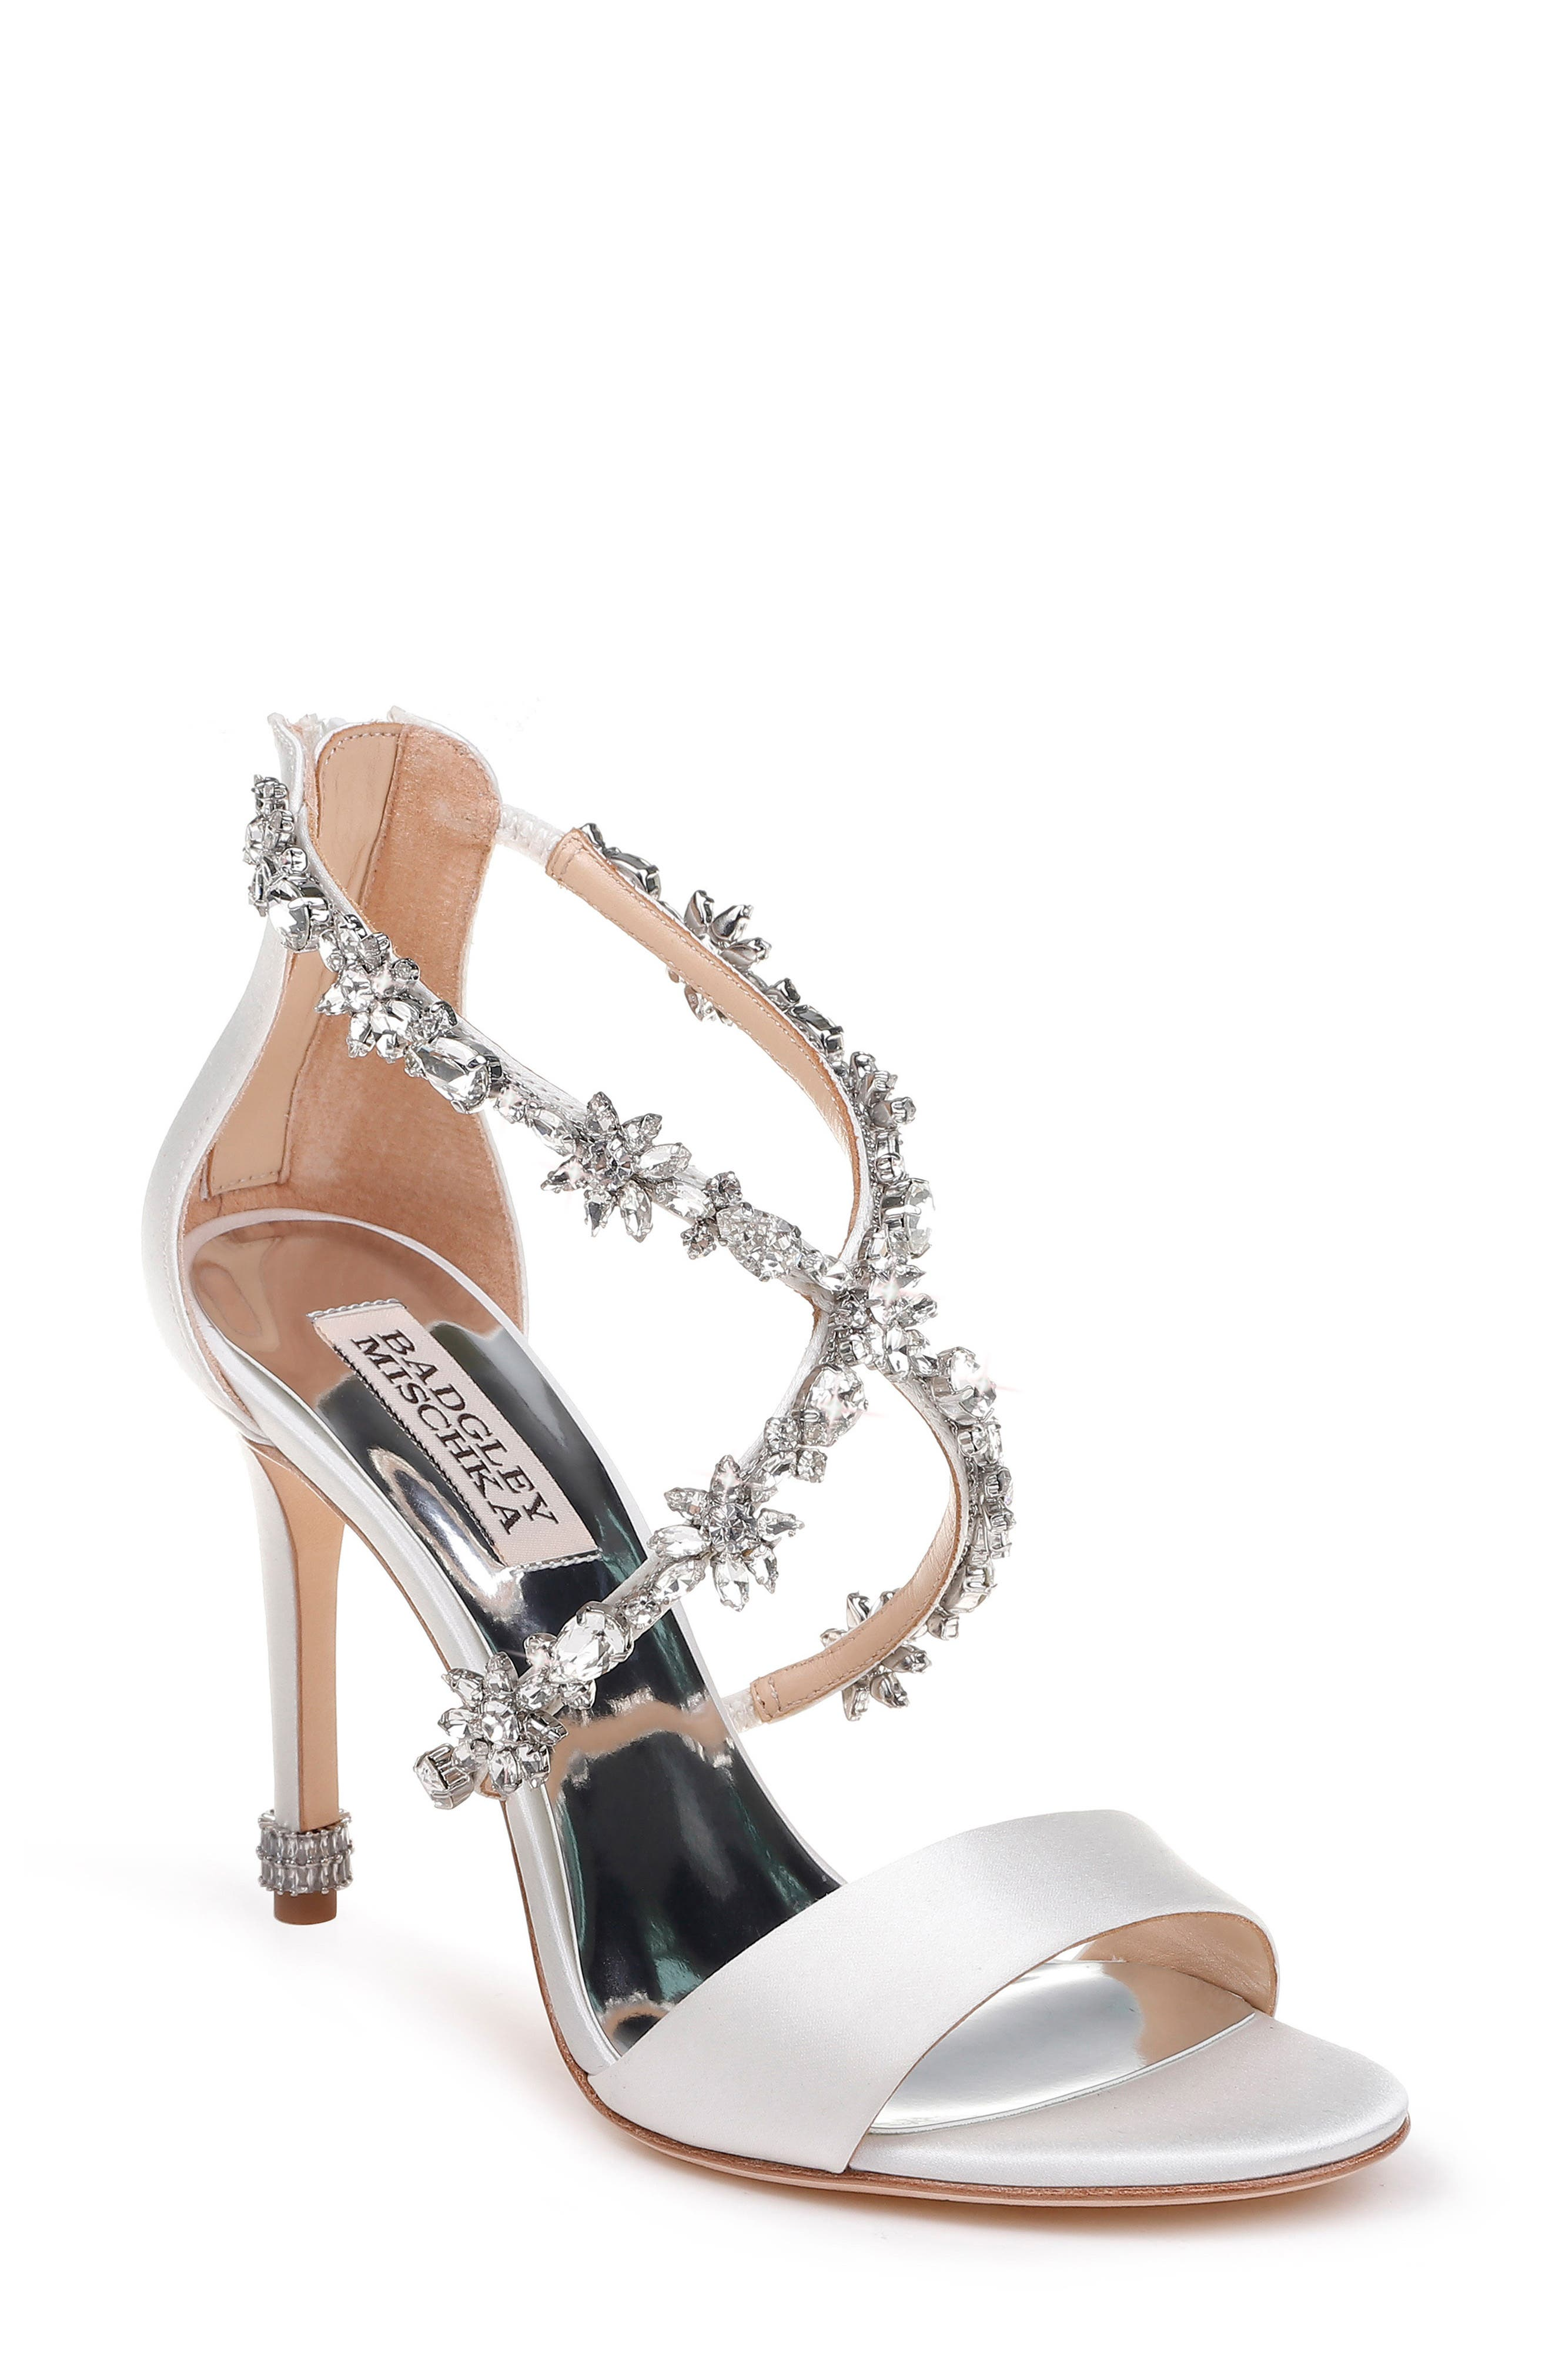 Crystal Embellished Sandal,                         Main,                         color, SOFT WHITE SATIN